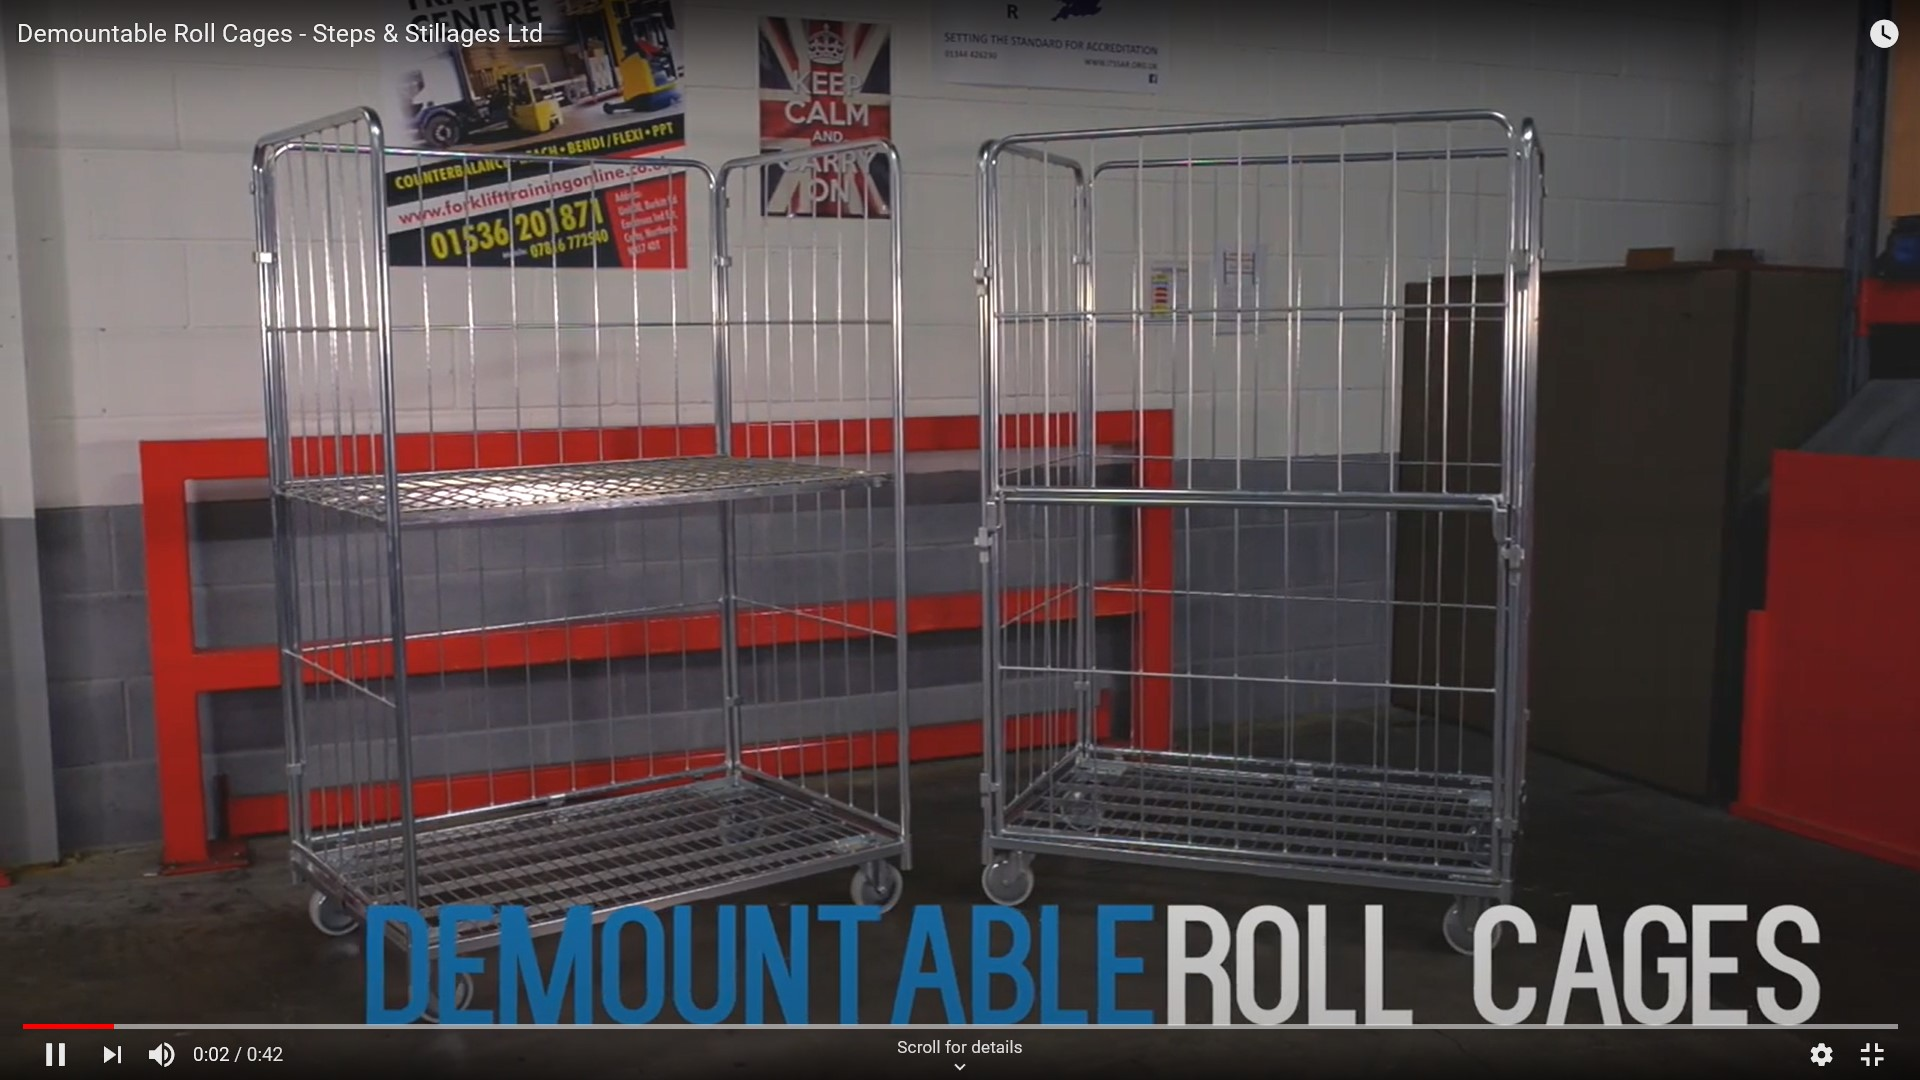 Demountable roll cage video